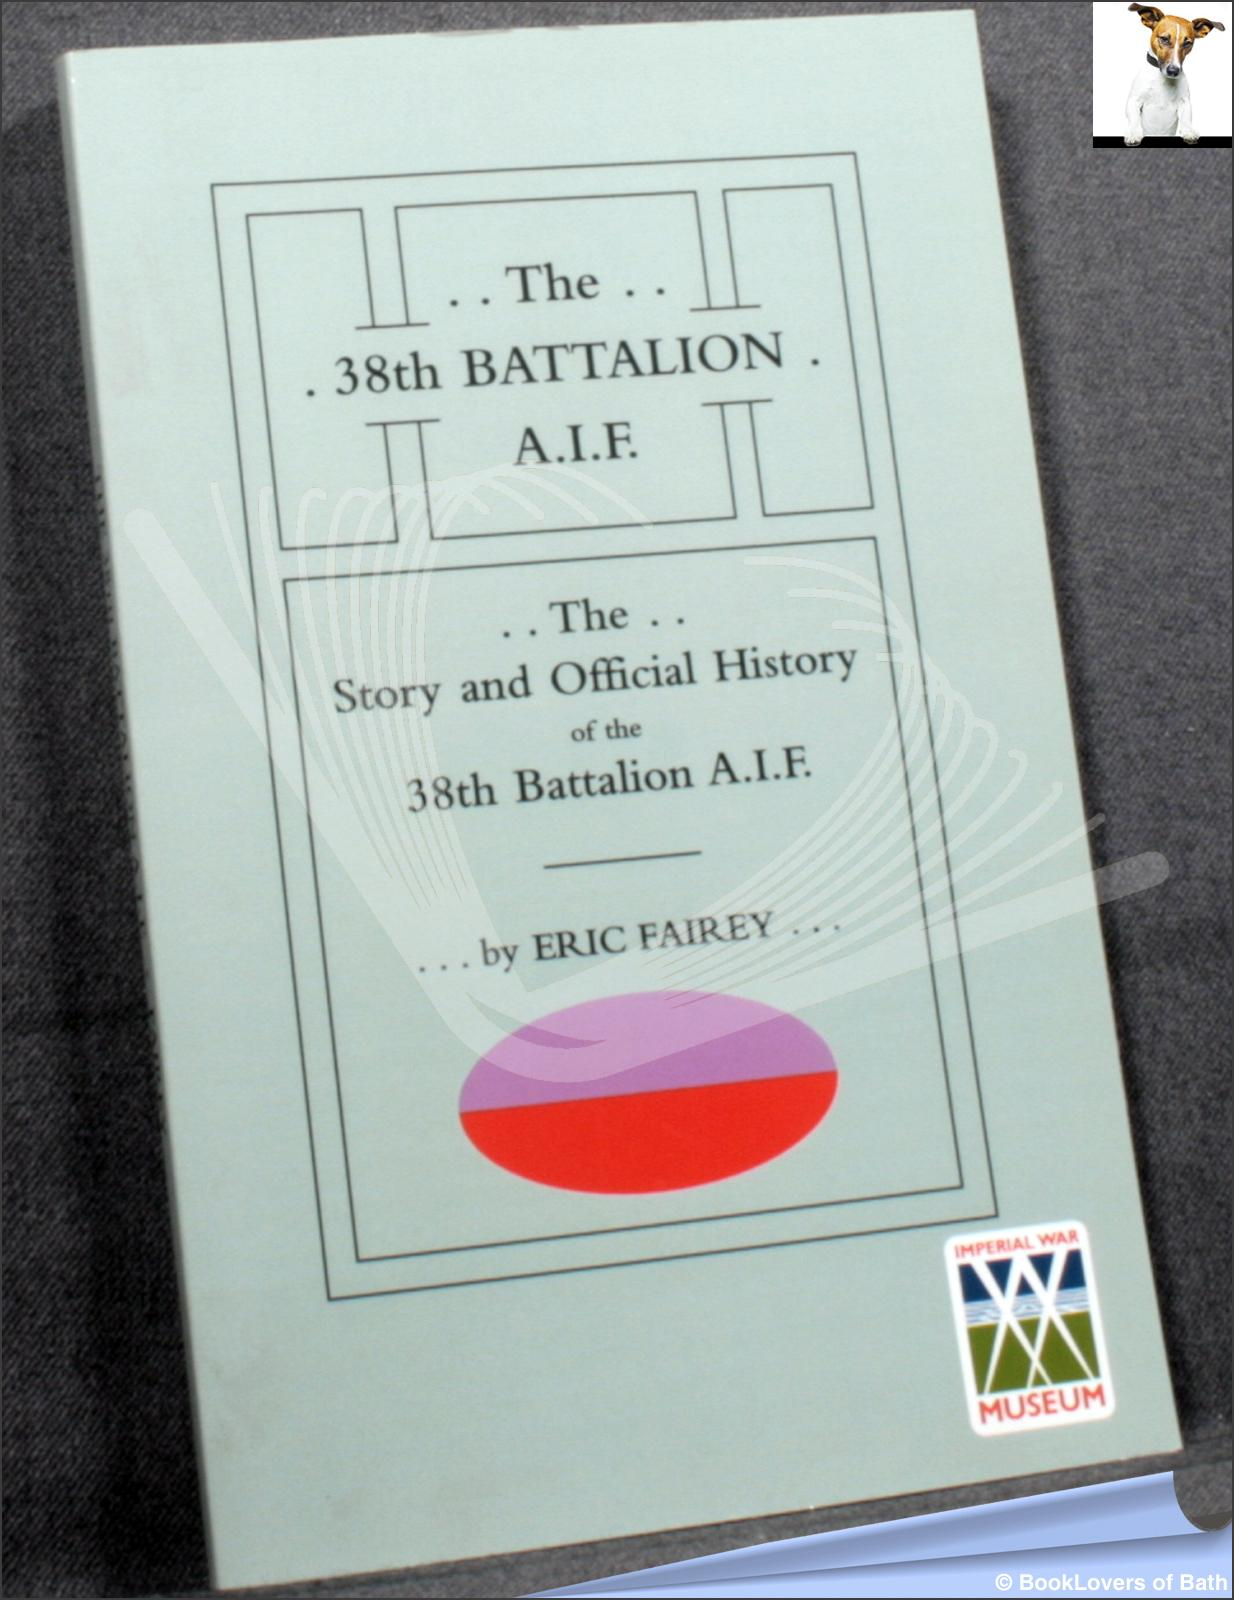 The 38th Battalion A.I.F.: The Story and Official History of the 38th Battalion A.I.F. - Eric Fairey